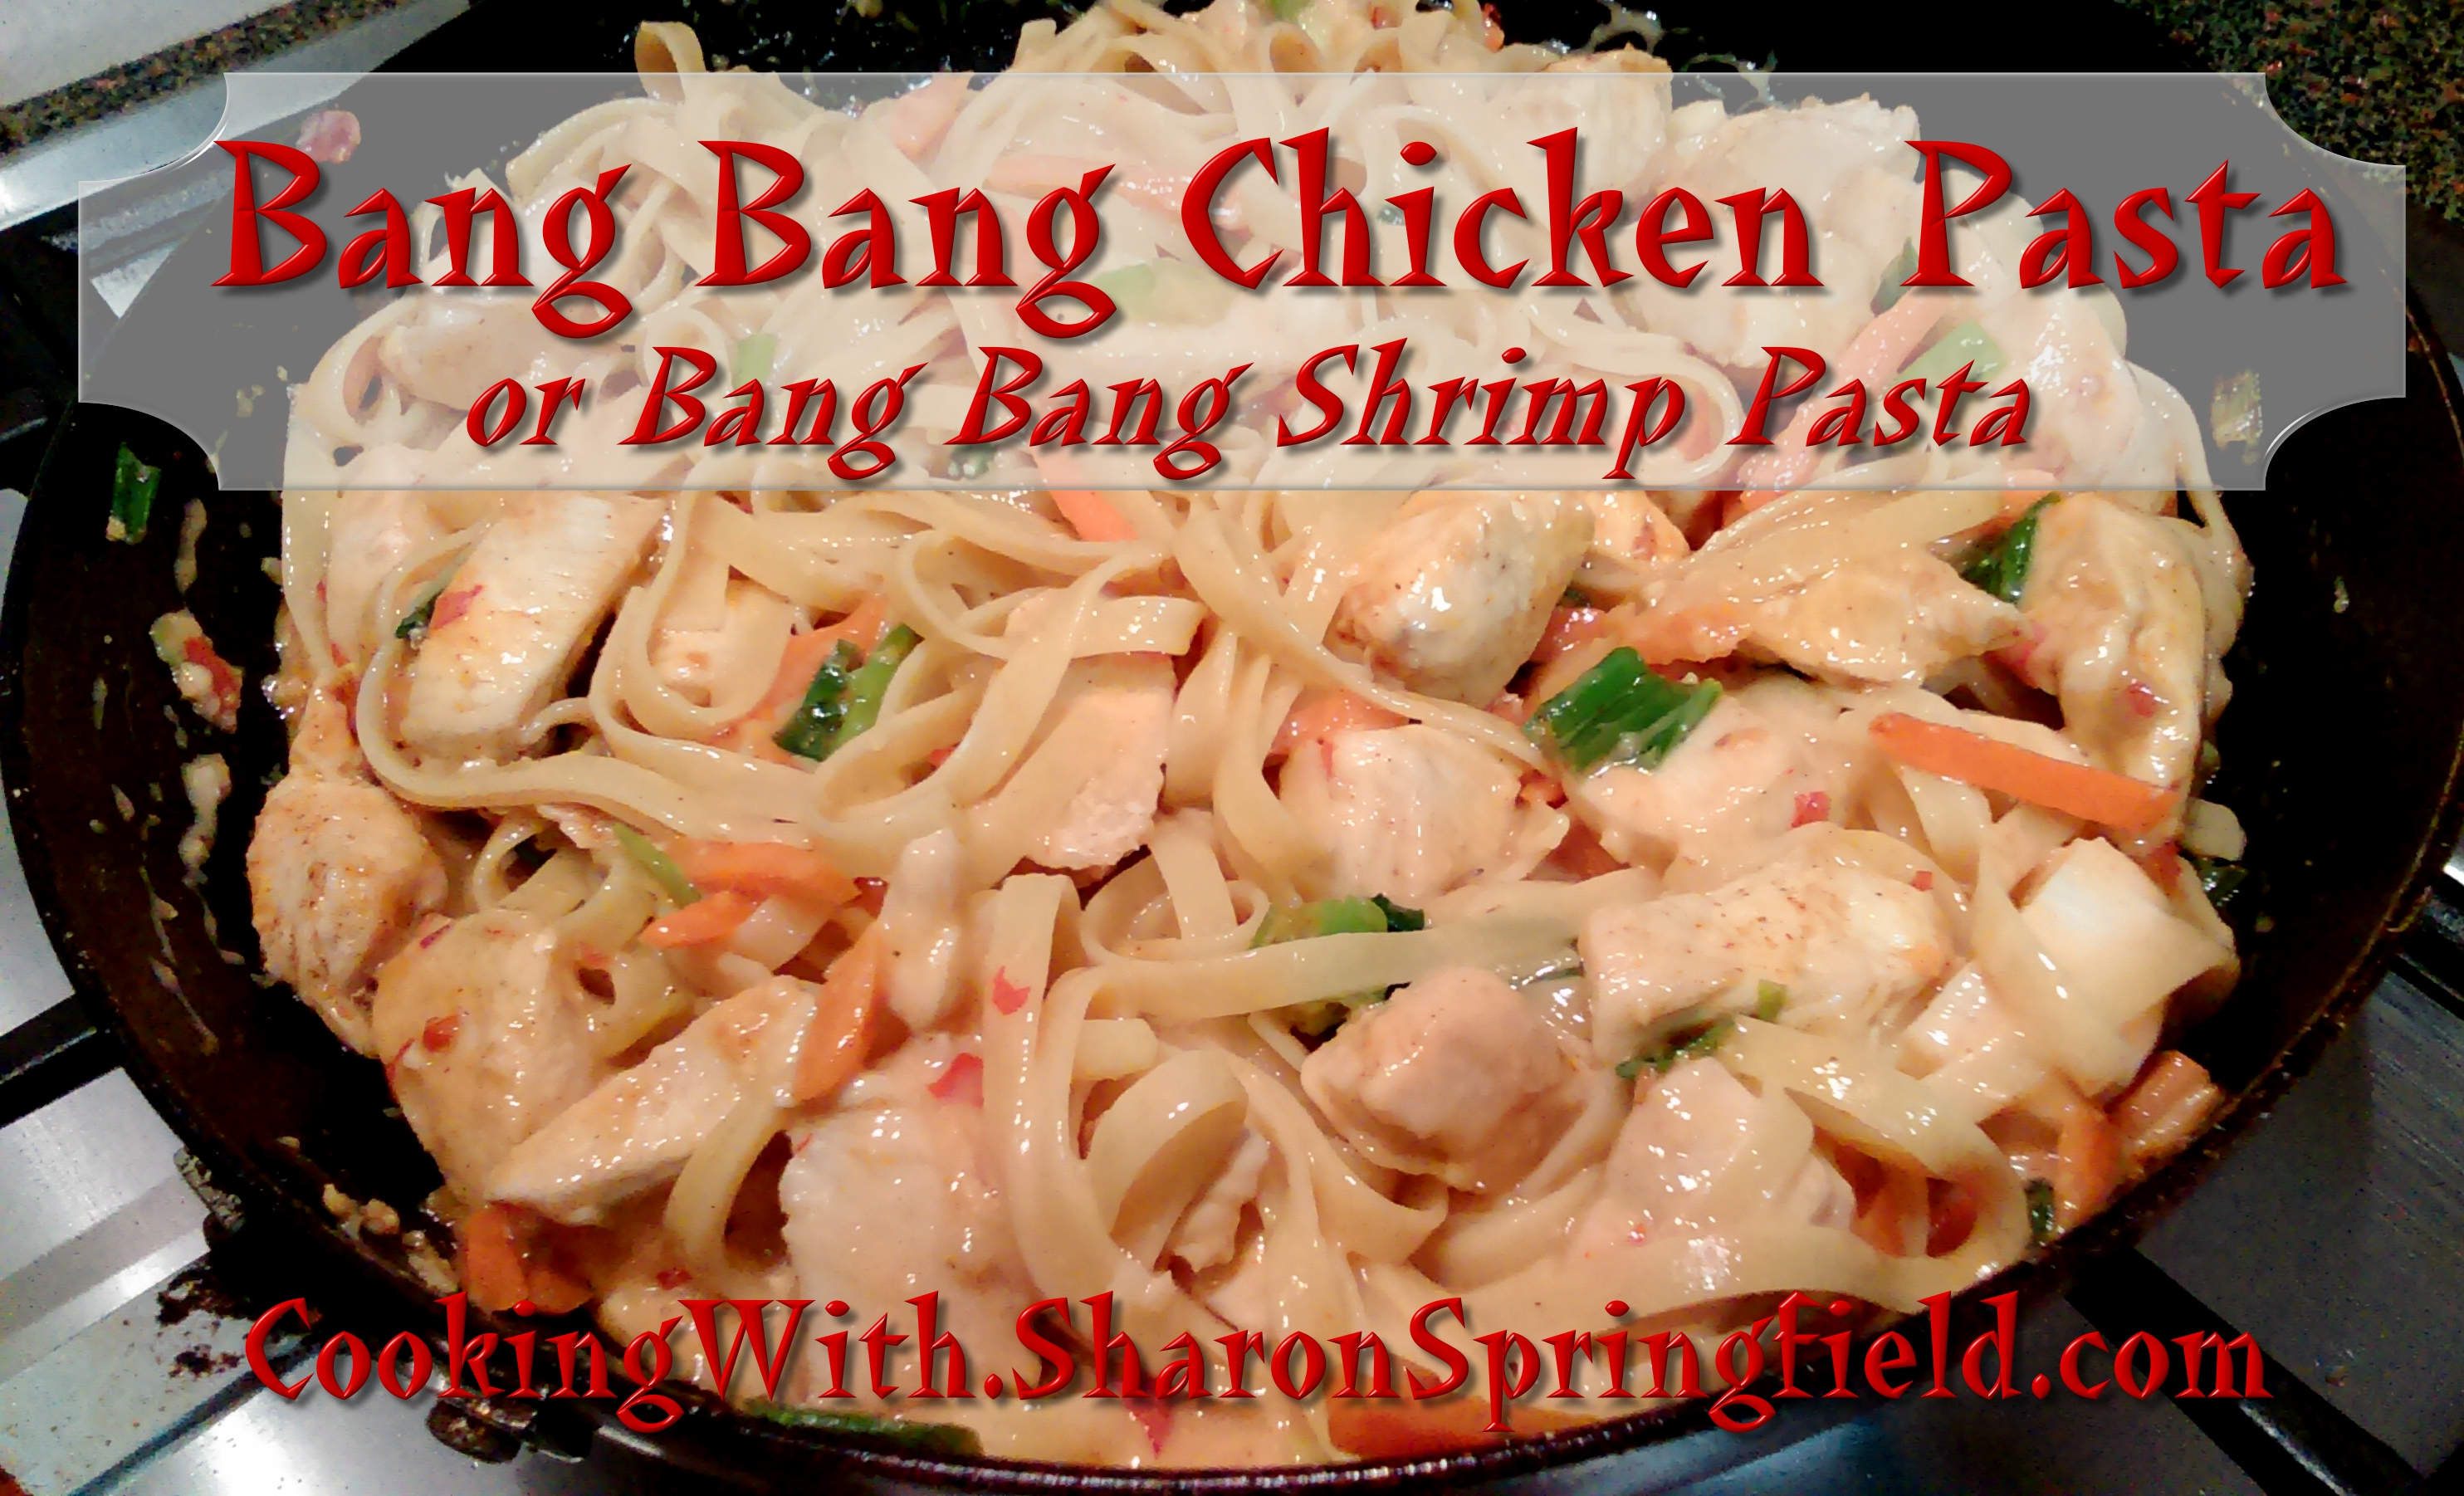 Bang Bang Chicken Pasta or Bang Bang Shrimp Pasta